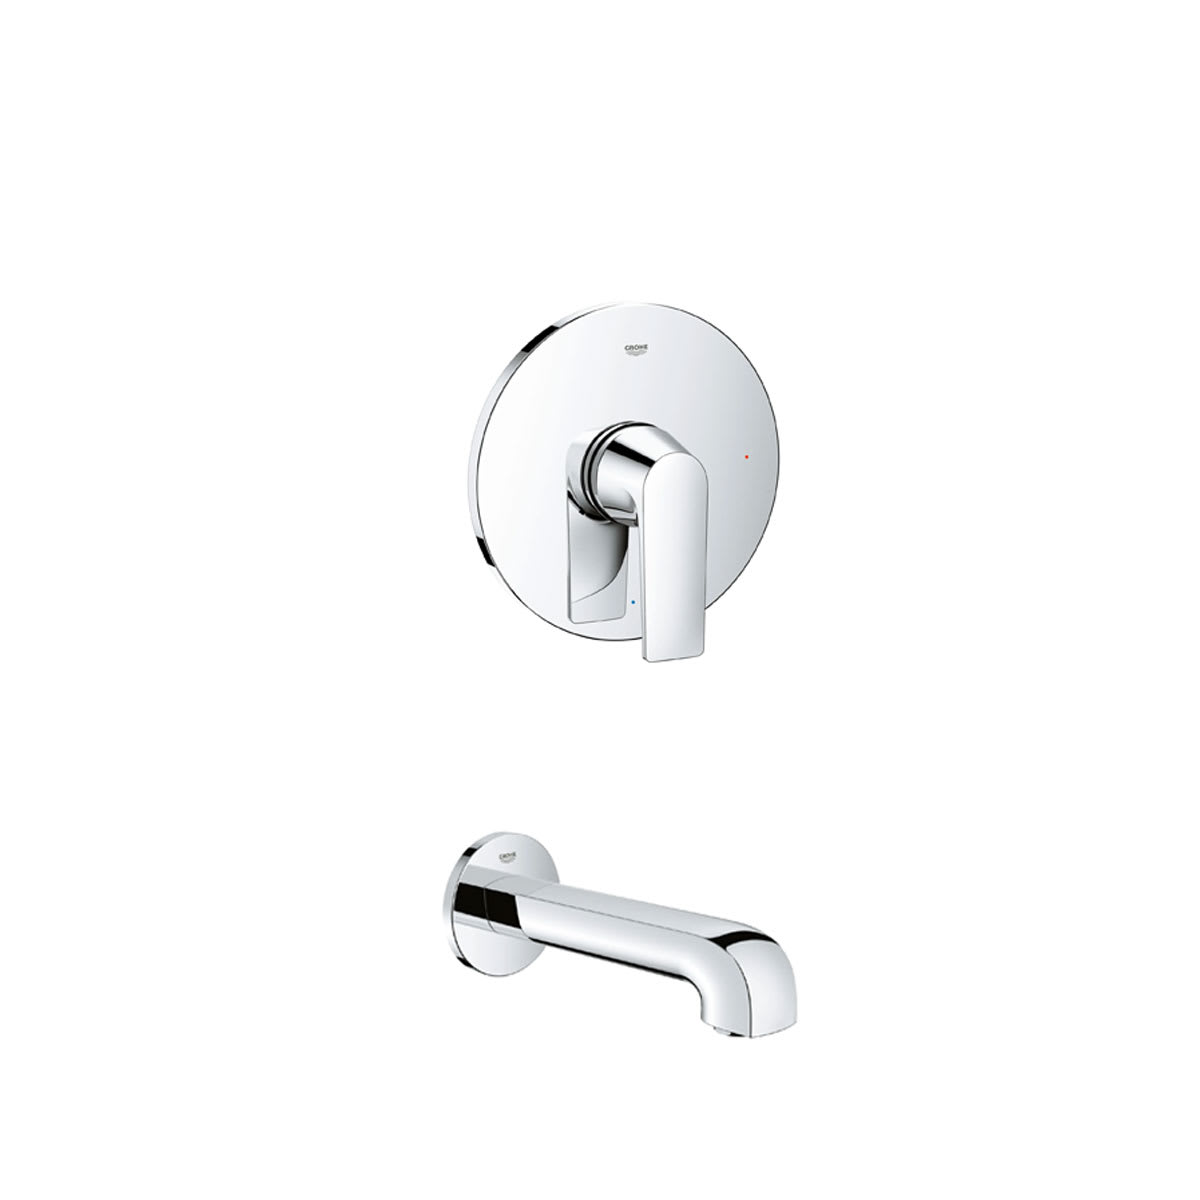 Grohe Gr Defined Tub 1 000 Starlight Chrome Defined Tub Only Package Includes Tub Faucet Valve Trim And Rough In Faucetdirect Com